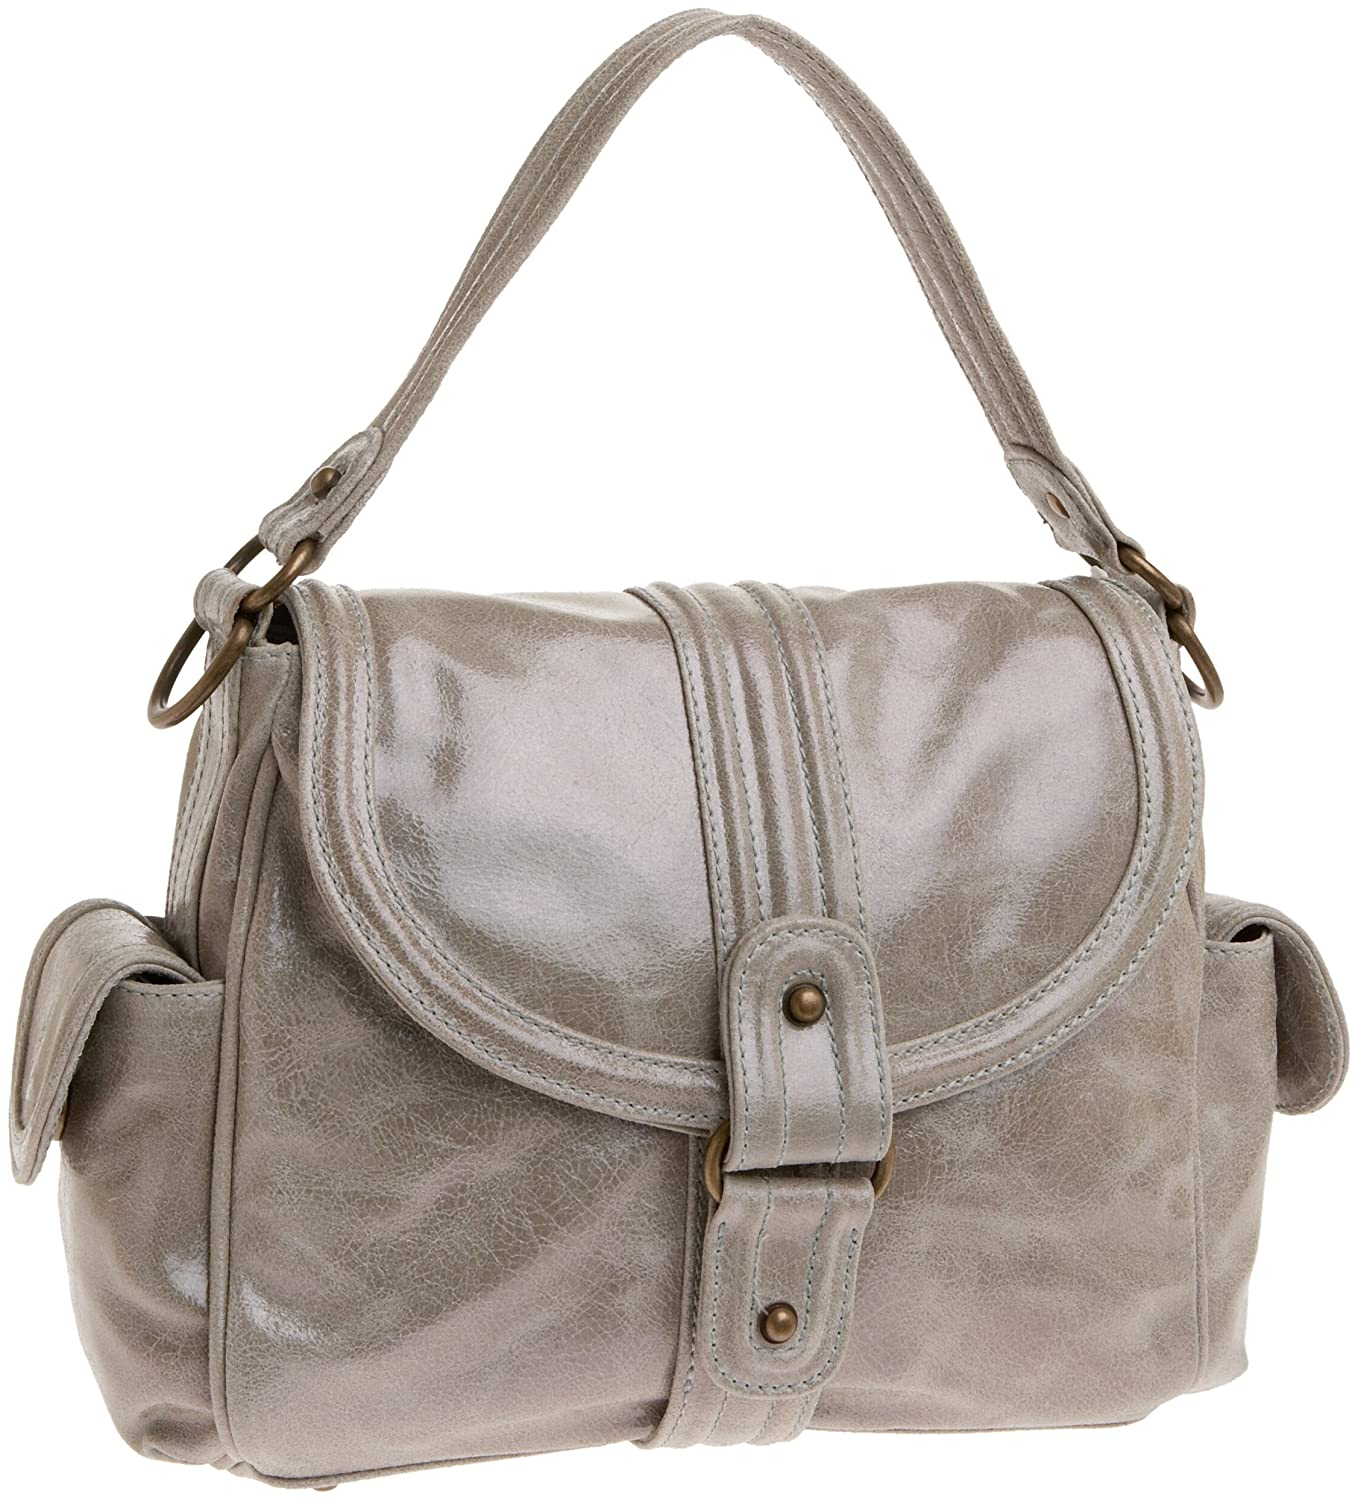 KALE Cameron Satchel - Free Overnight Shipping & Return Shipping: Endless.com :  bowling bag lined straps bag